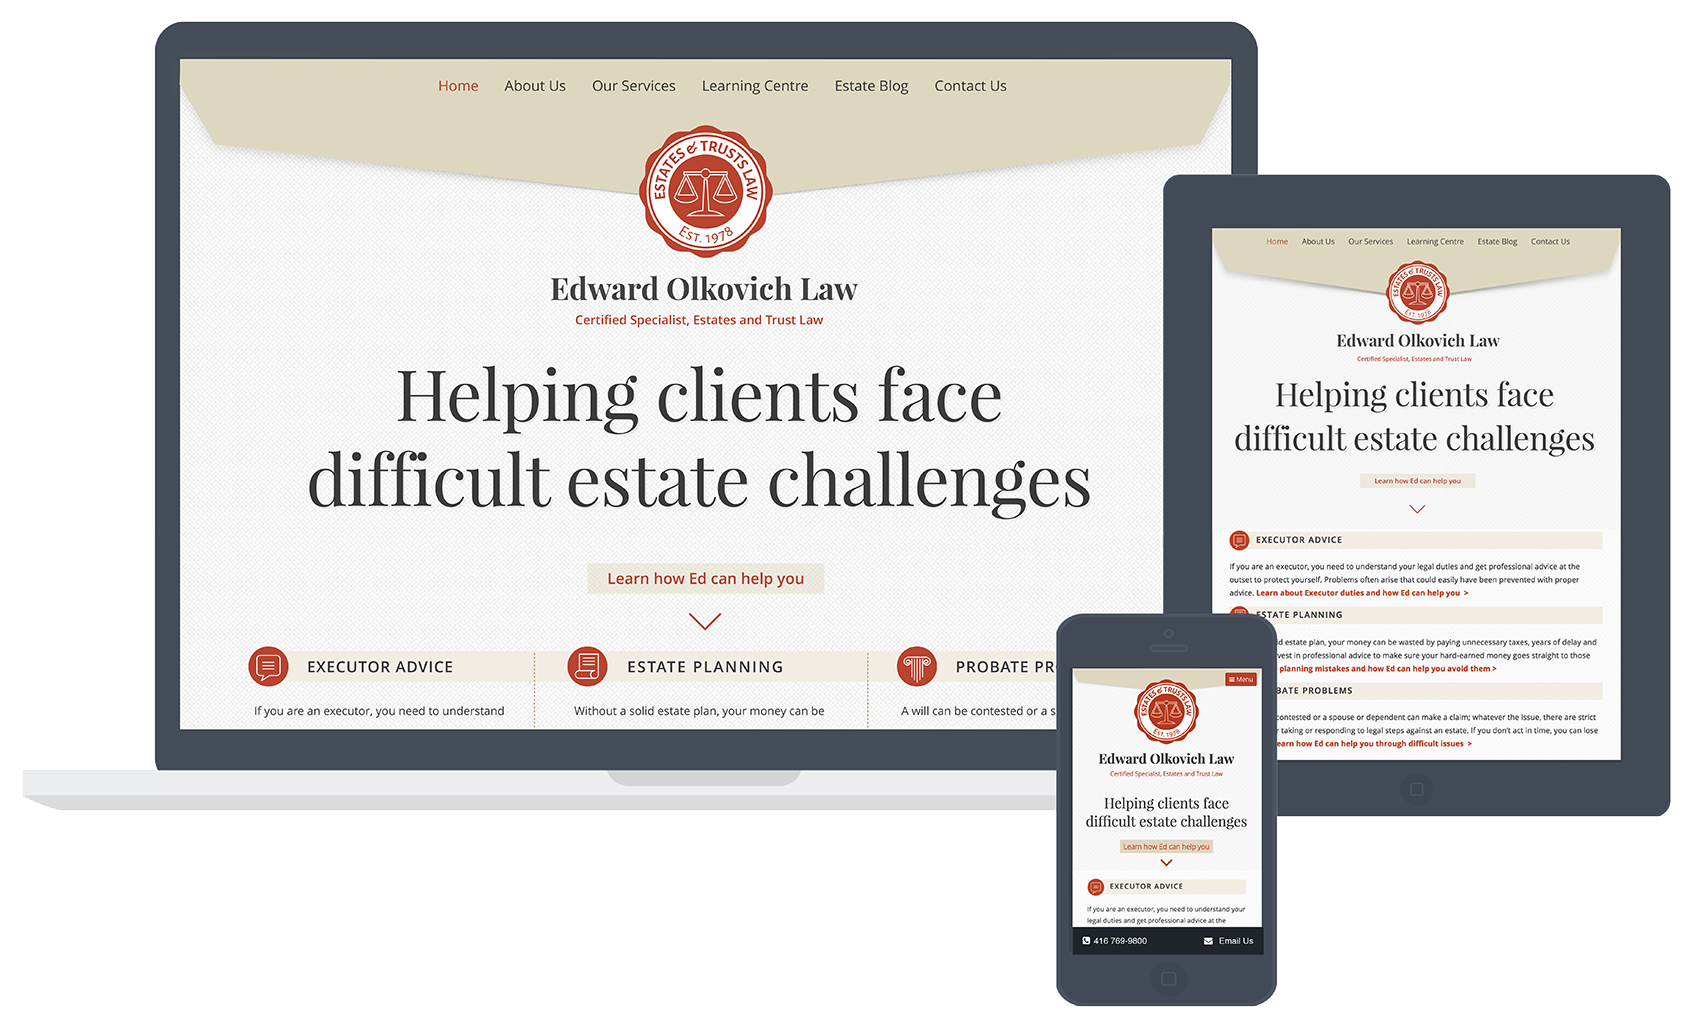 Edward Olkovich Law web design